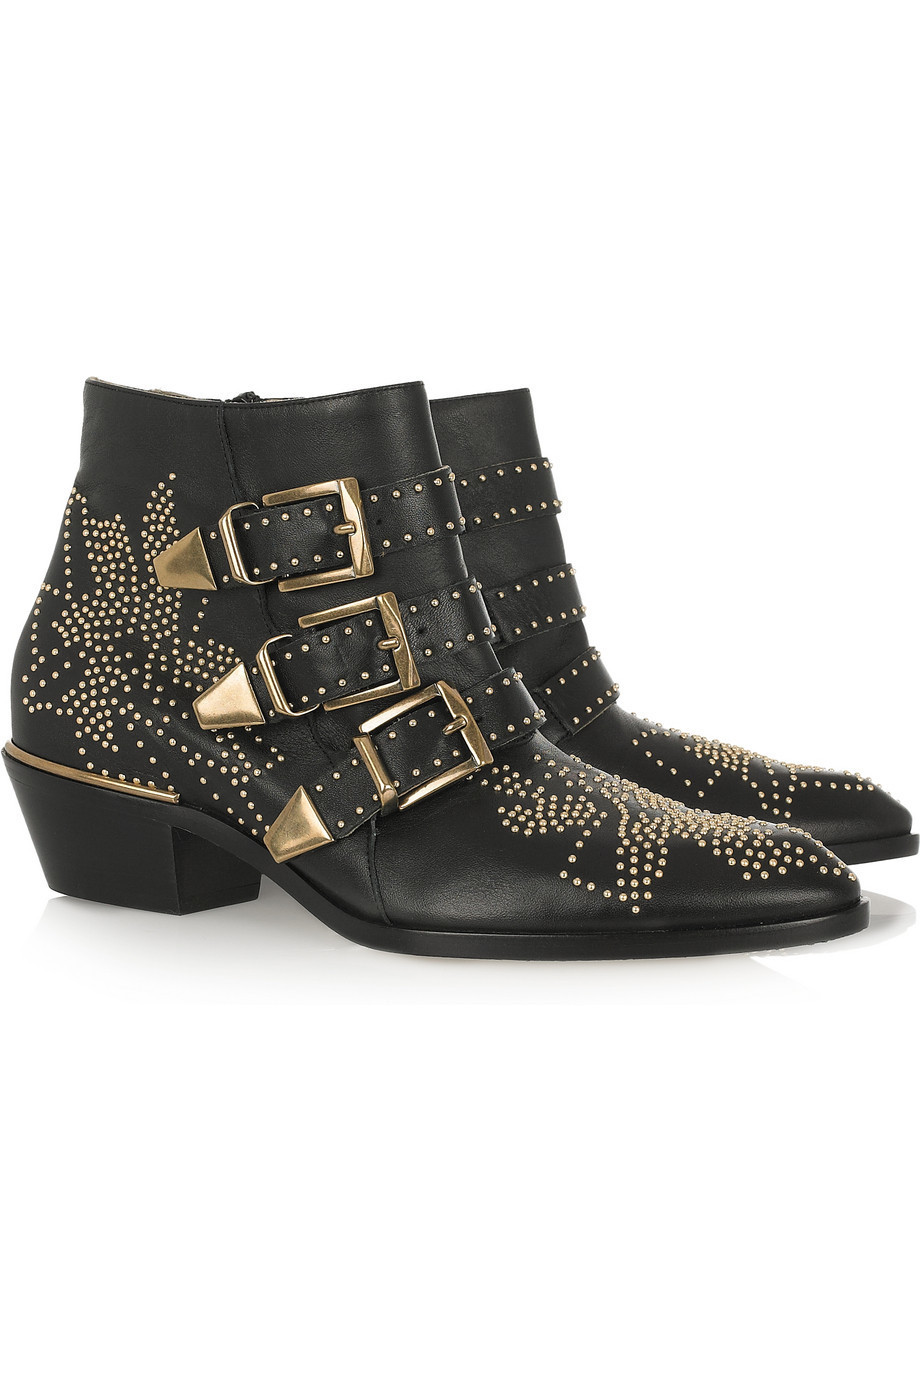 Chloe Gold Studded Ankle Boots Chloé Studded Leather Ankle